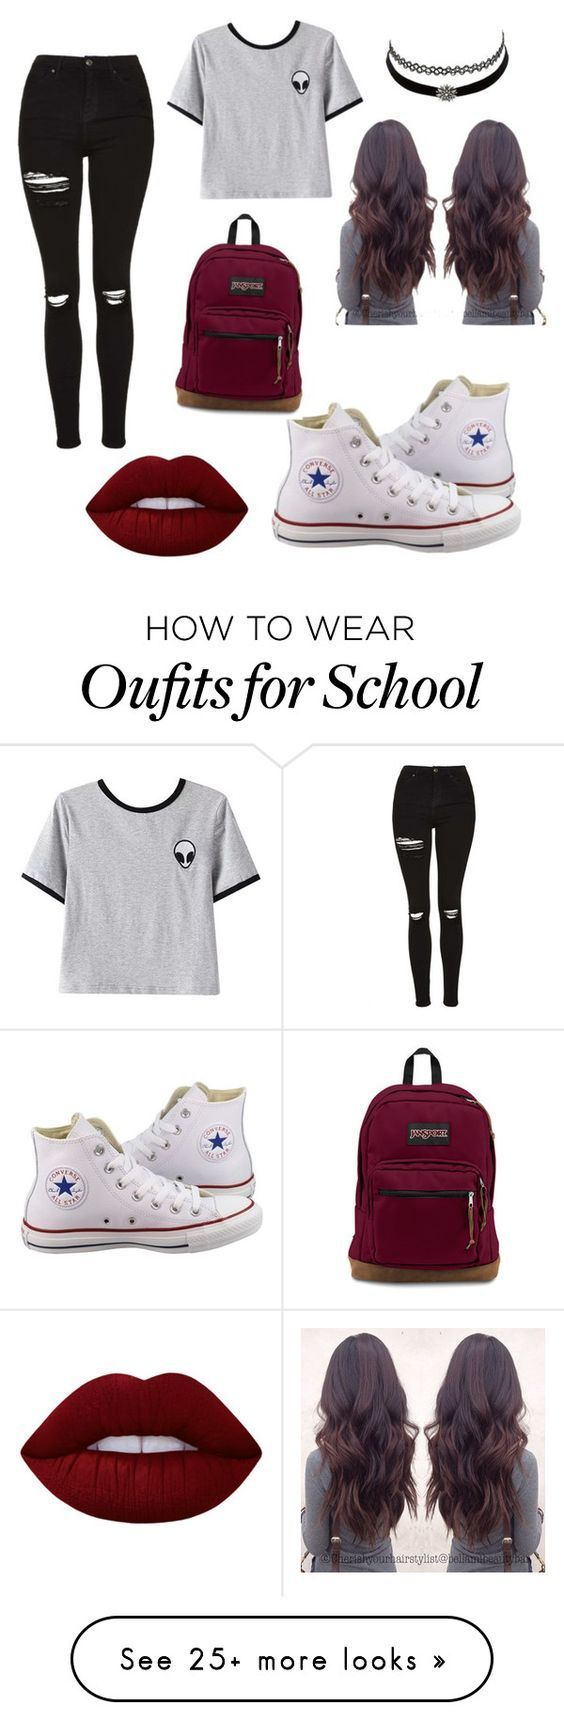 """outfit for school"" by pxrlx on Polyvore featuring Converse, Chicnova Fashion, Topshop, Charlotte Russe and Lime Crime:"